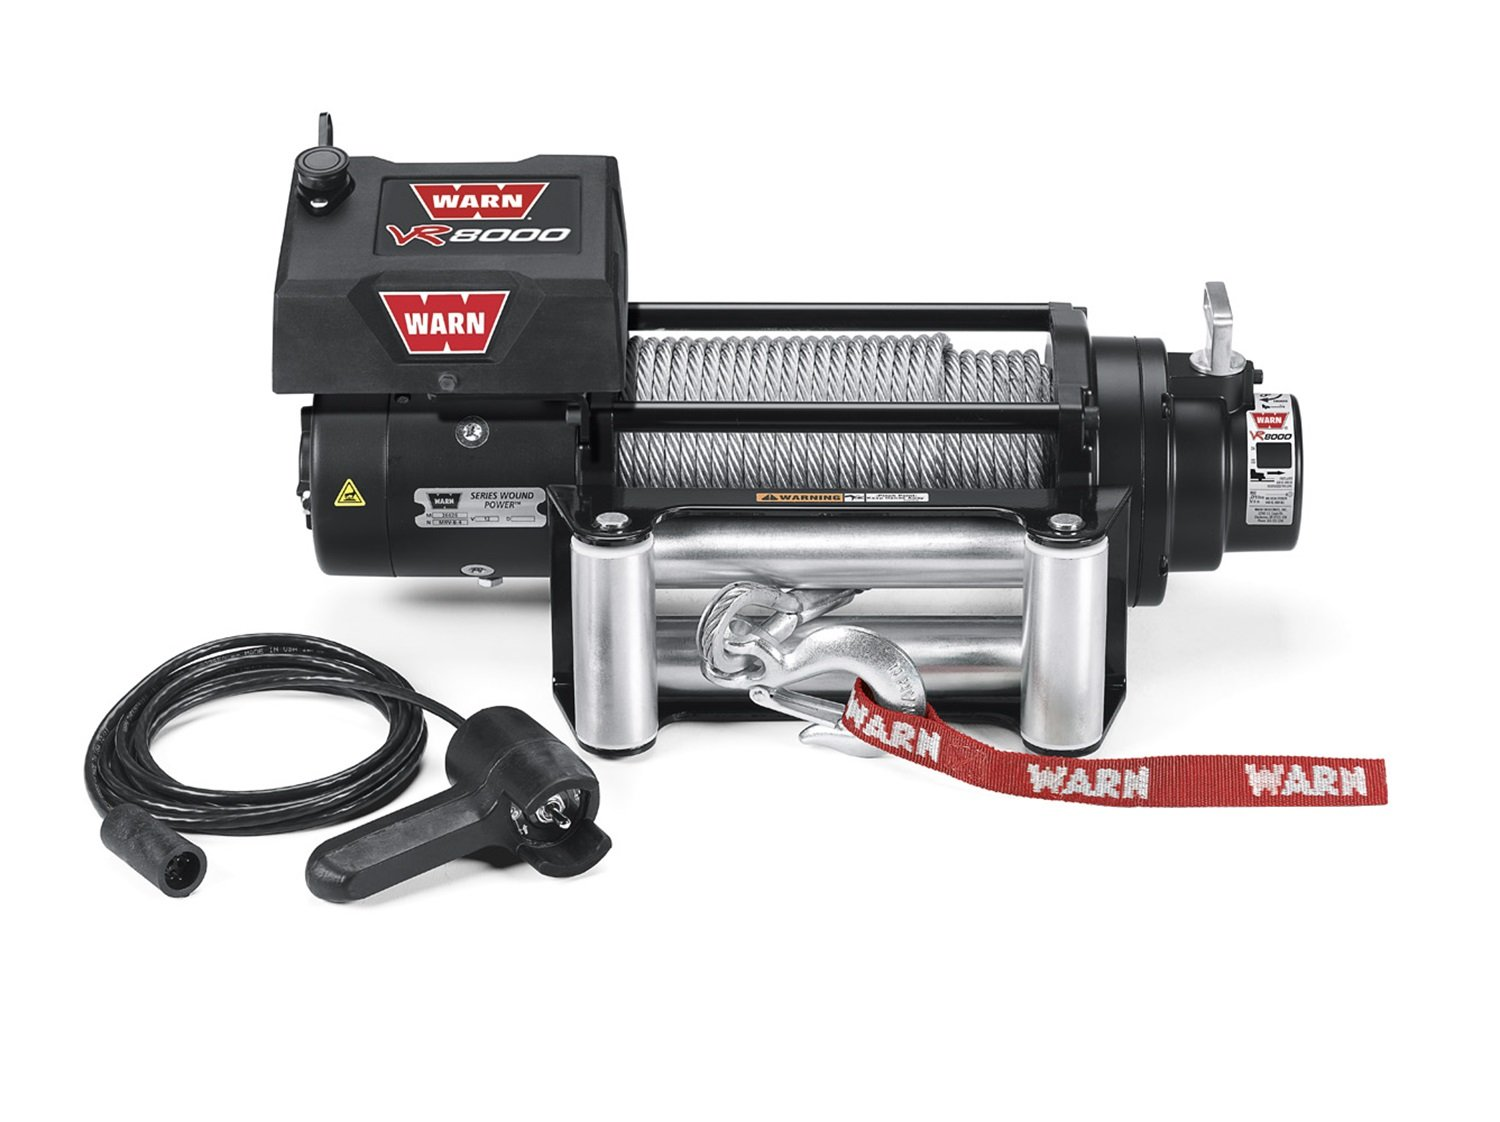 71syf3RVqtL._SL1500_ amazon com warn 86245 vr8000 8,000 lb winch automotive Electric Hoist at mifinder.co